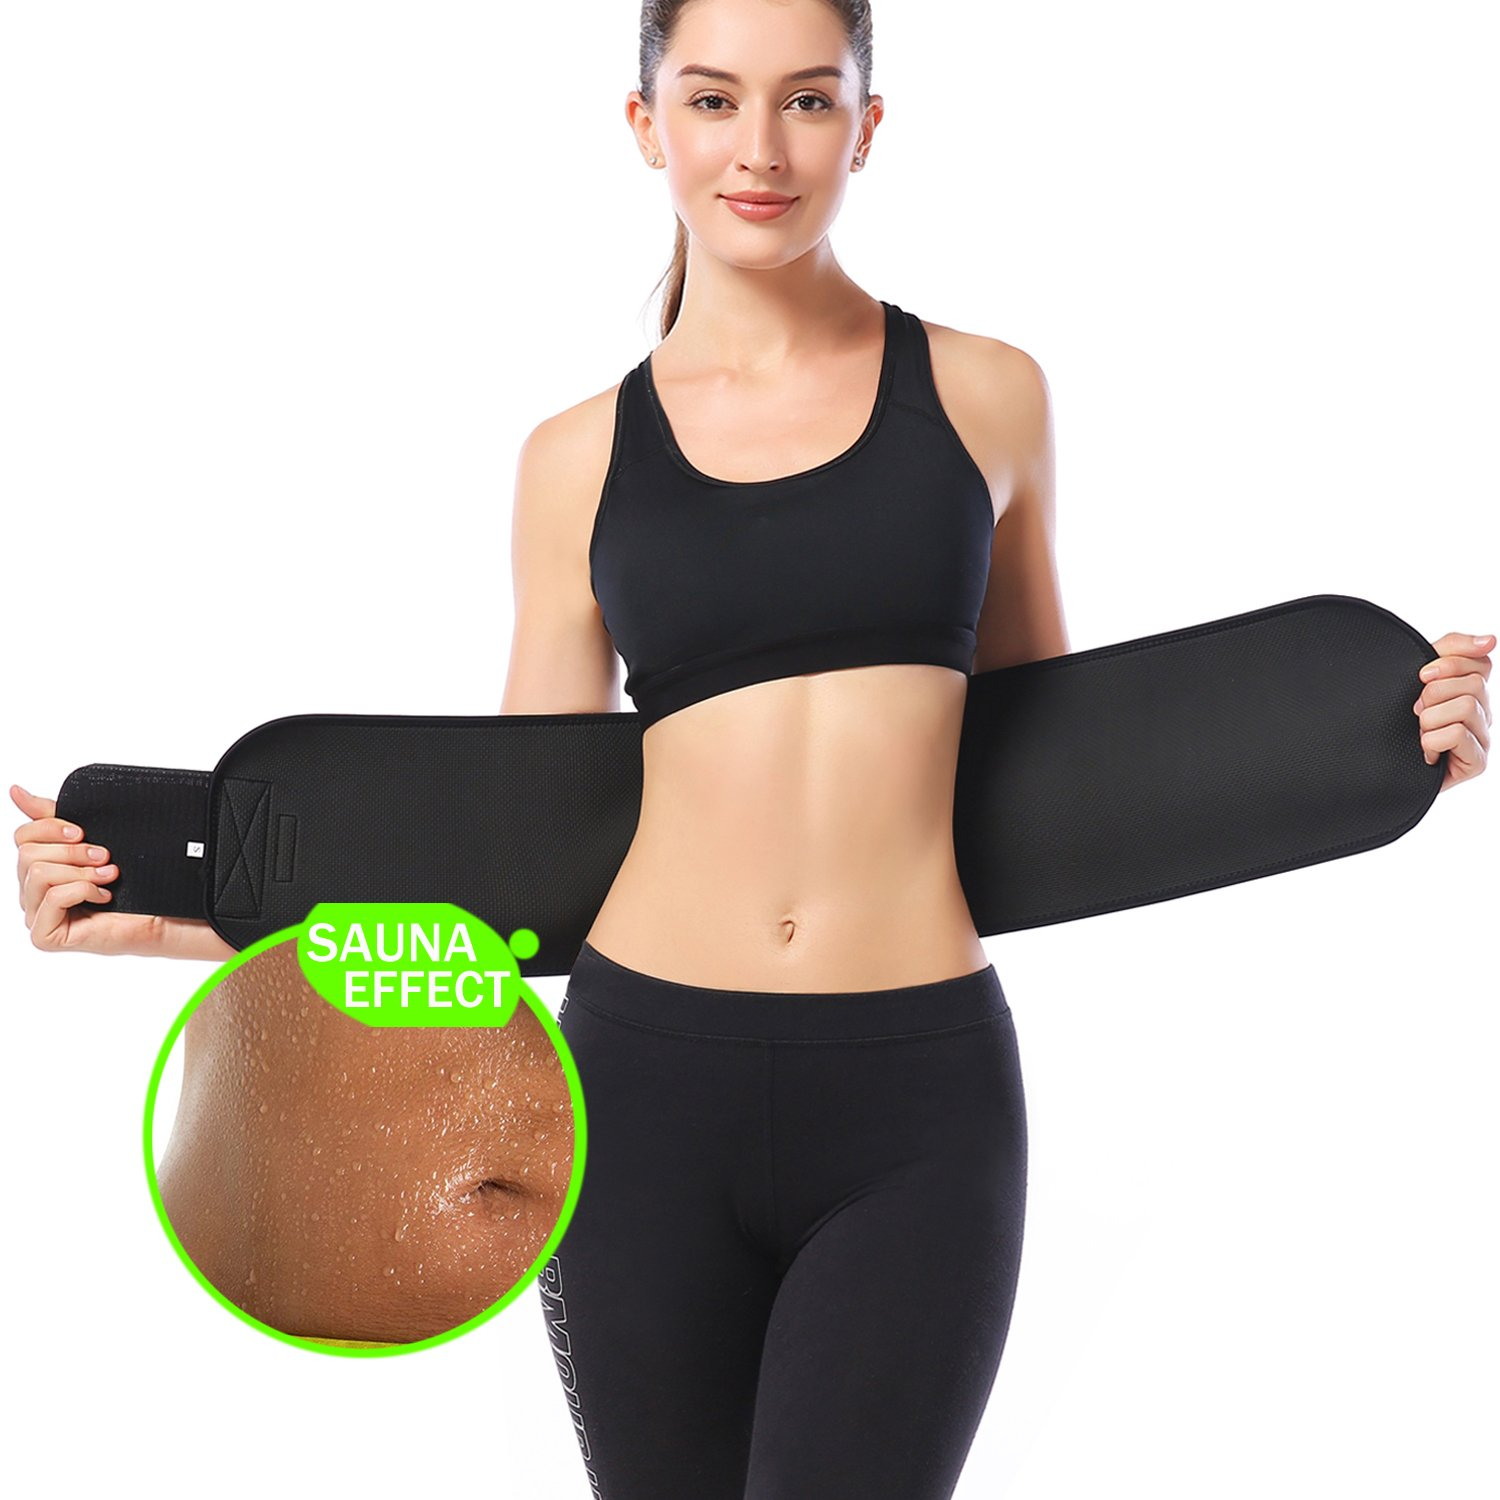 b5b0c24120 Amazon.com  KOOCHY Waist Trimmer Slimming Belt - Waist Trainer Weight Loss  AB Belt - Premium Stomach Fat Burner Wrap for Women   Men  Sports   Outdoors